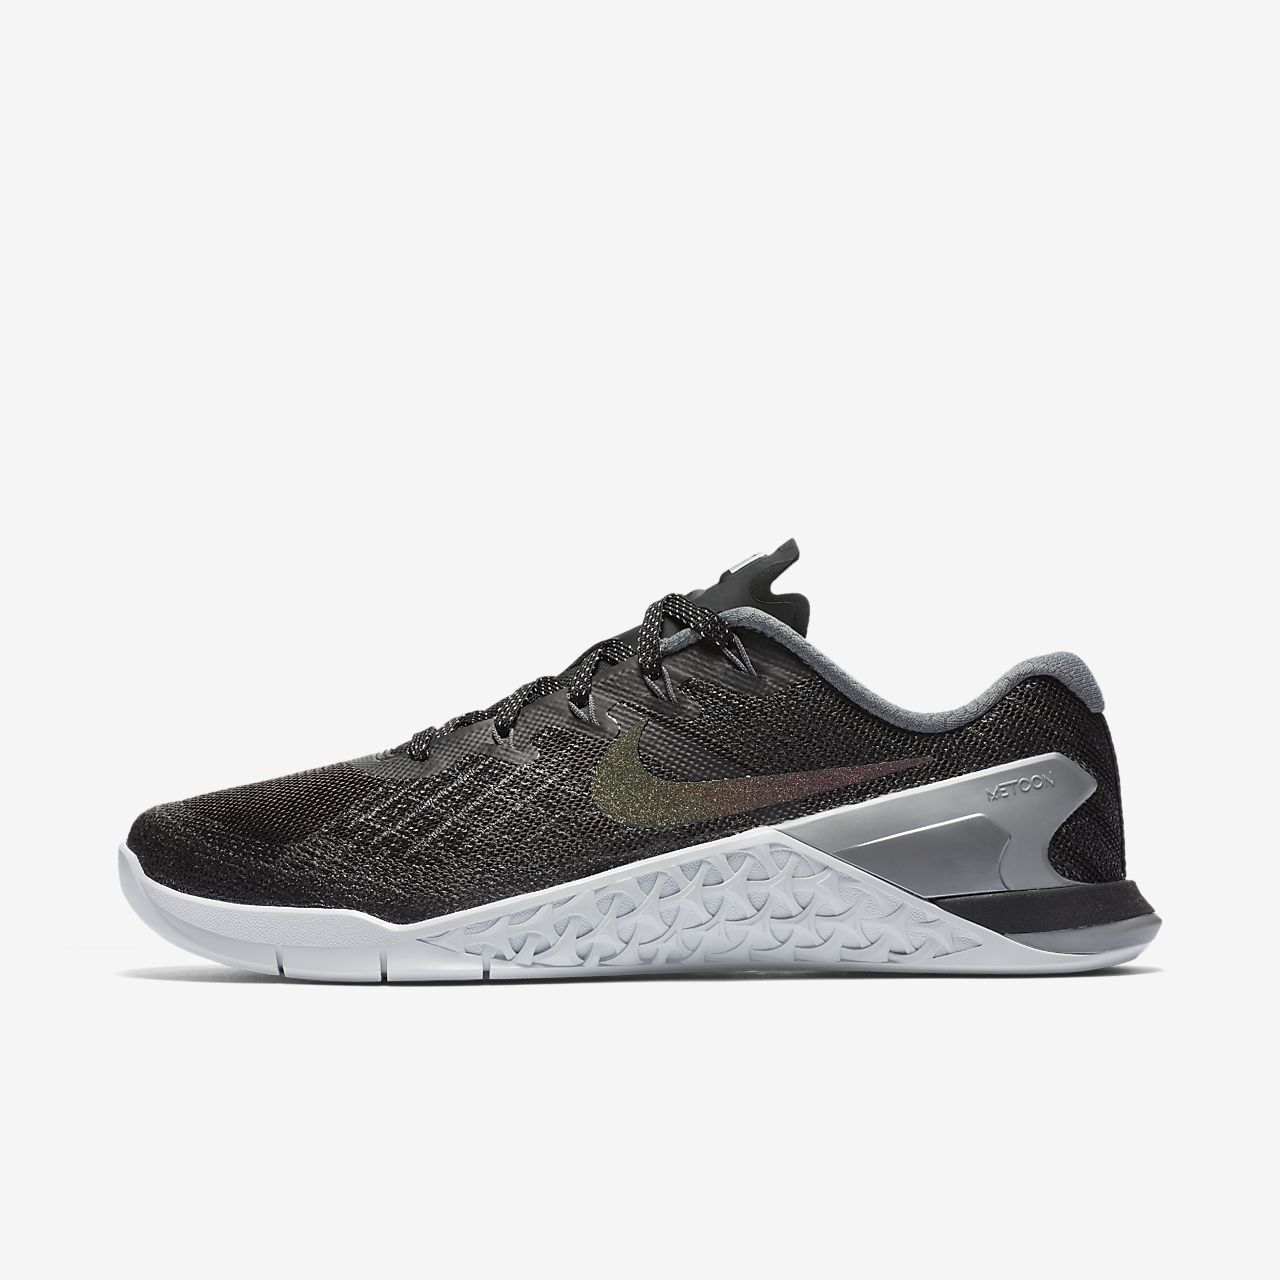 Chaussure de training Metallic Nike Metcon 3 Metallic training pour CA 37bbc8